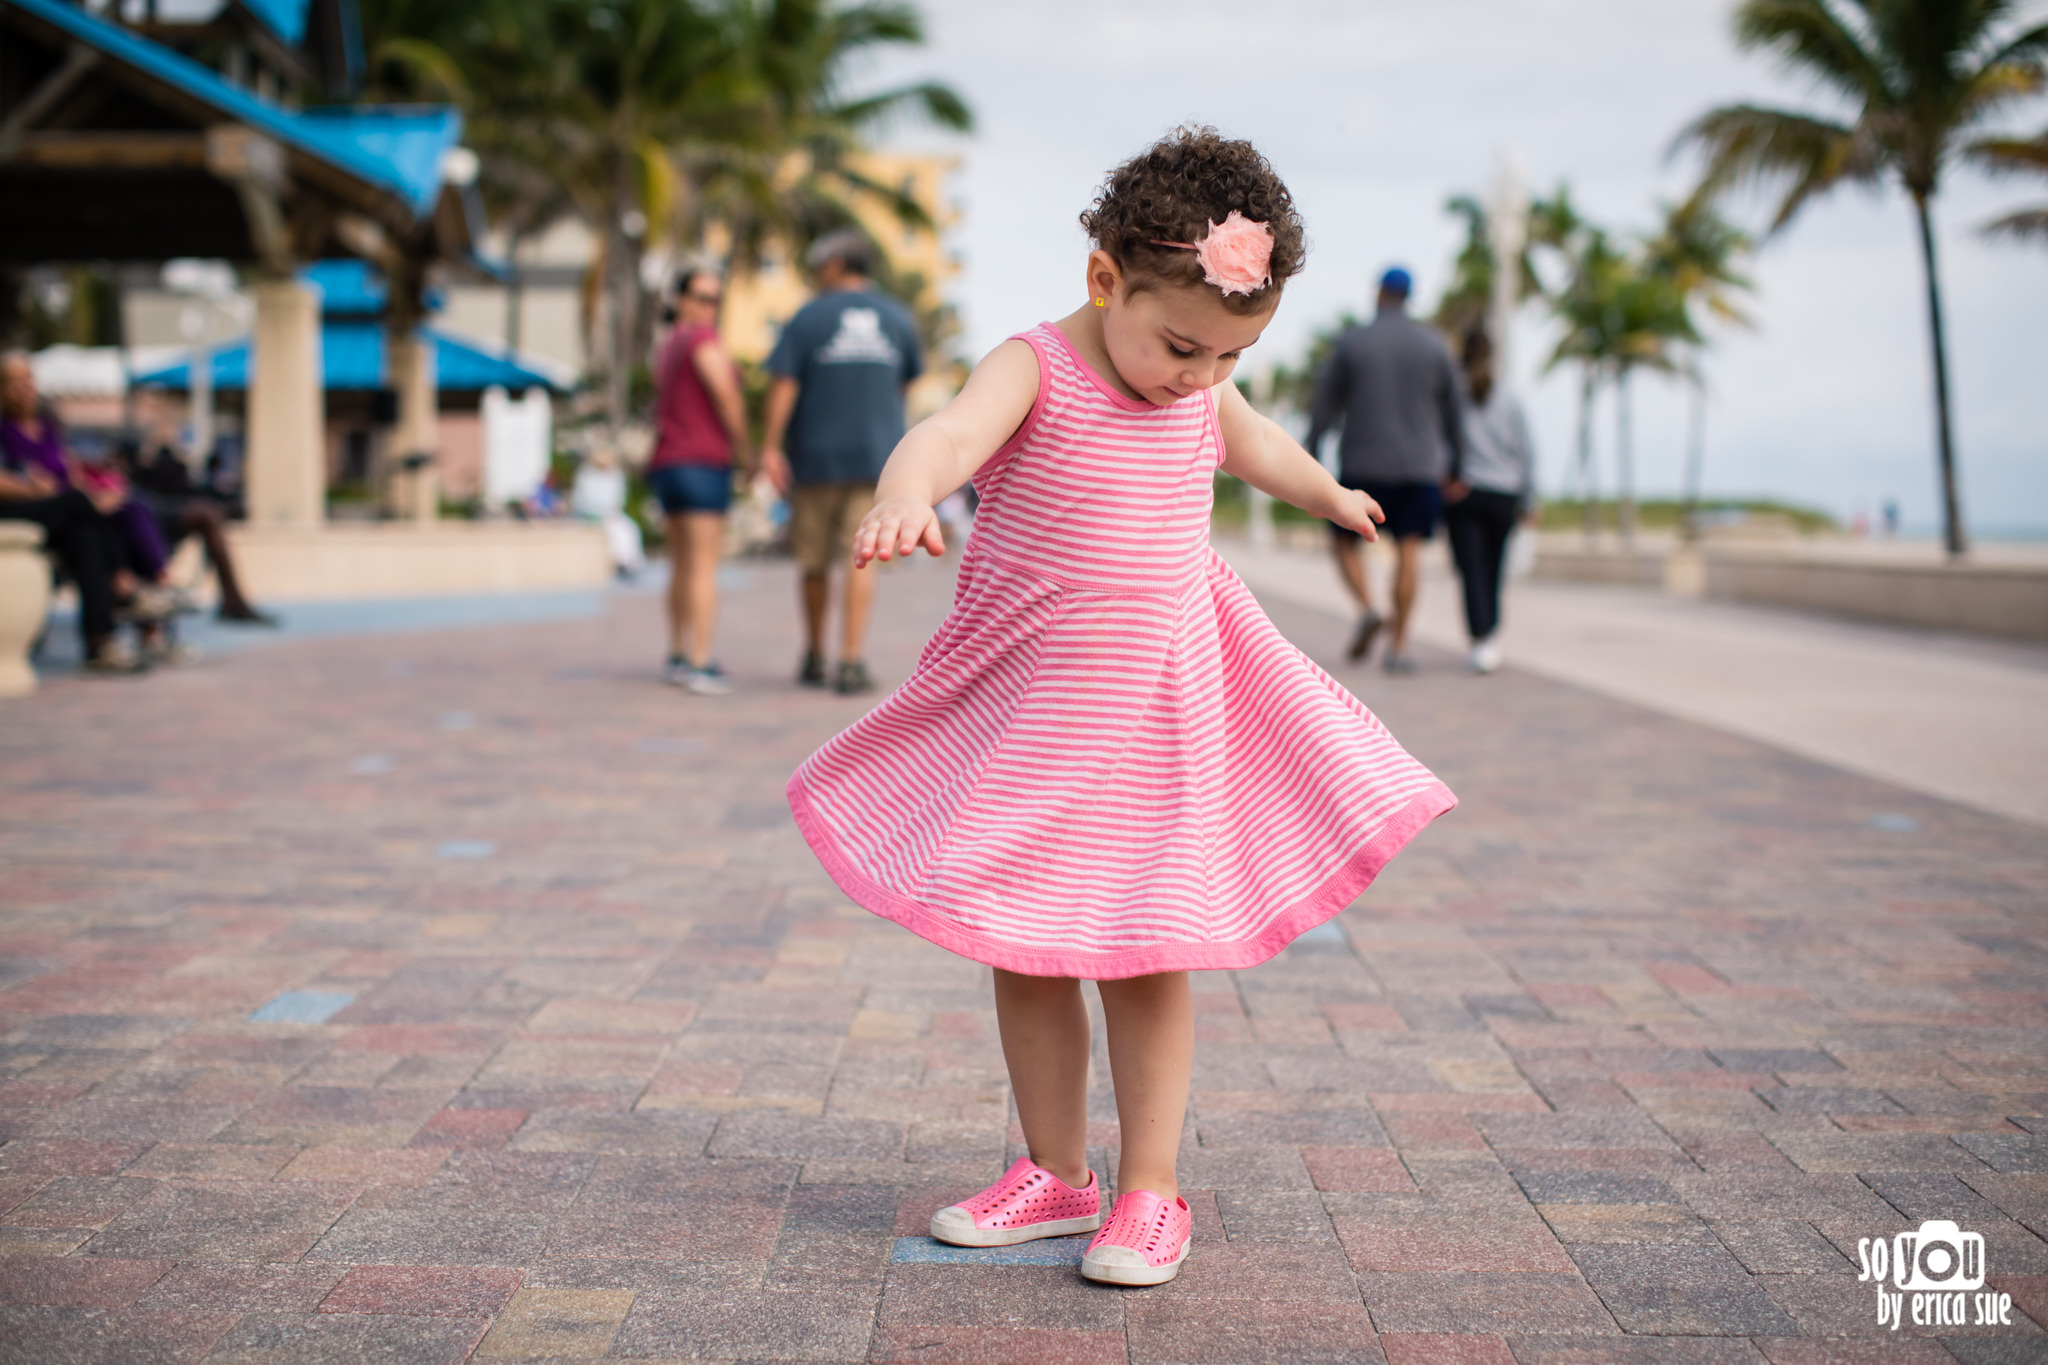 so-you-by-erica-sue-hollywood-beach-lifestyle-family-photographer-session-1402.JPG